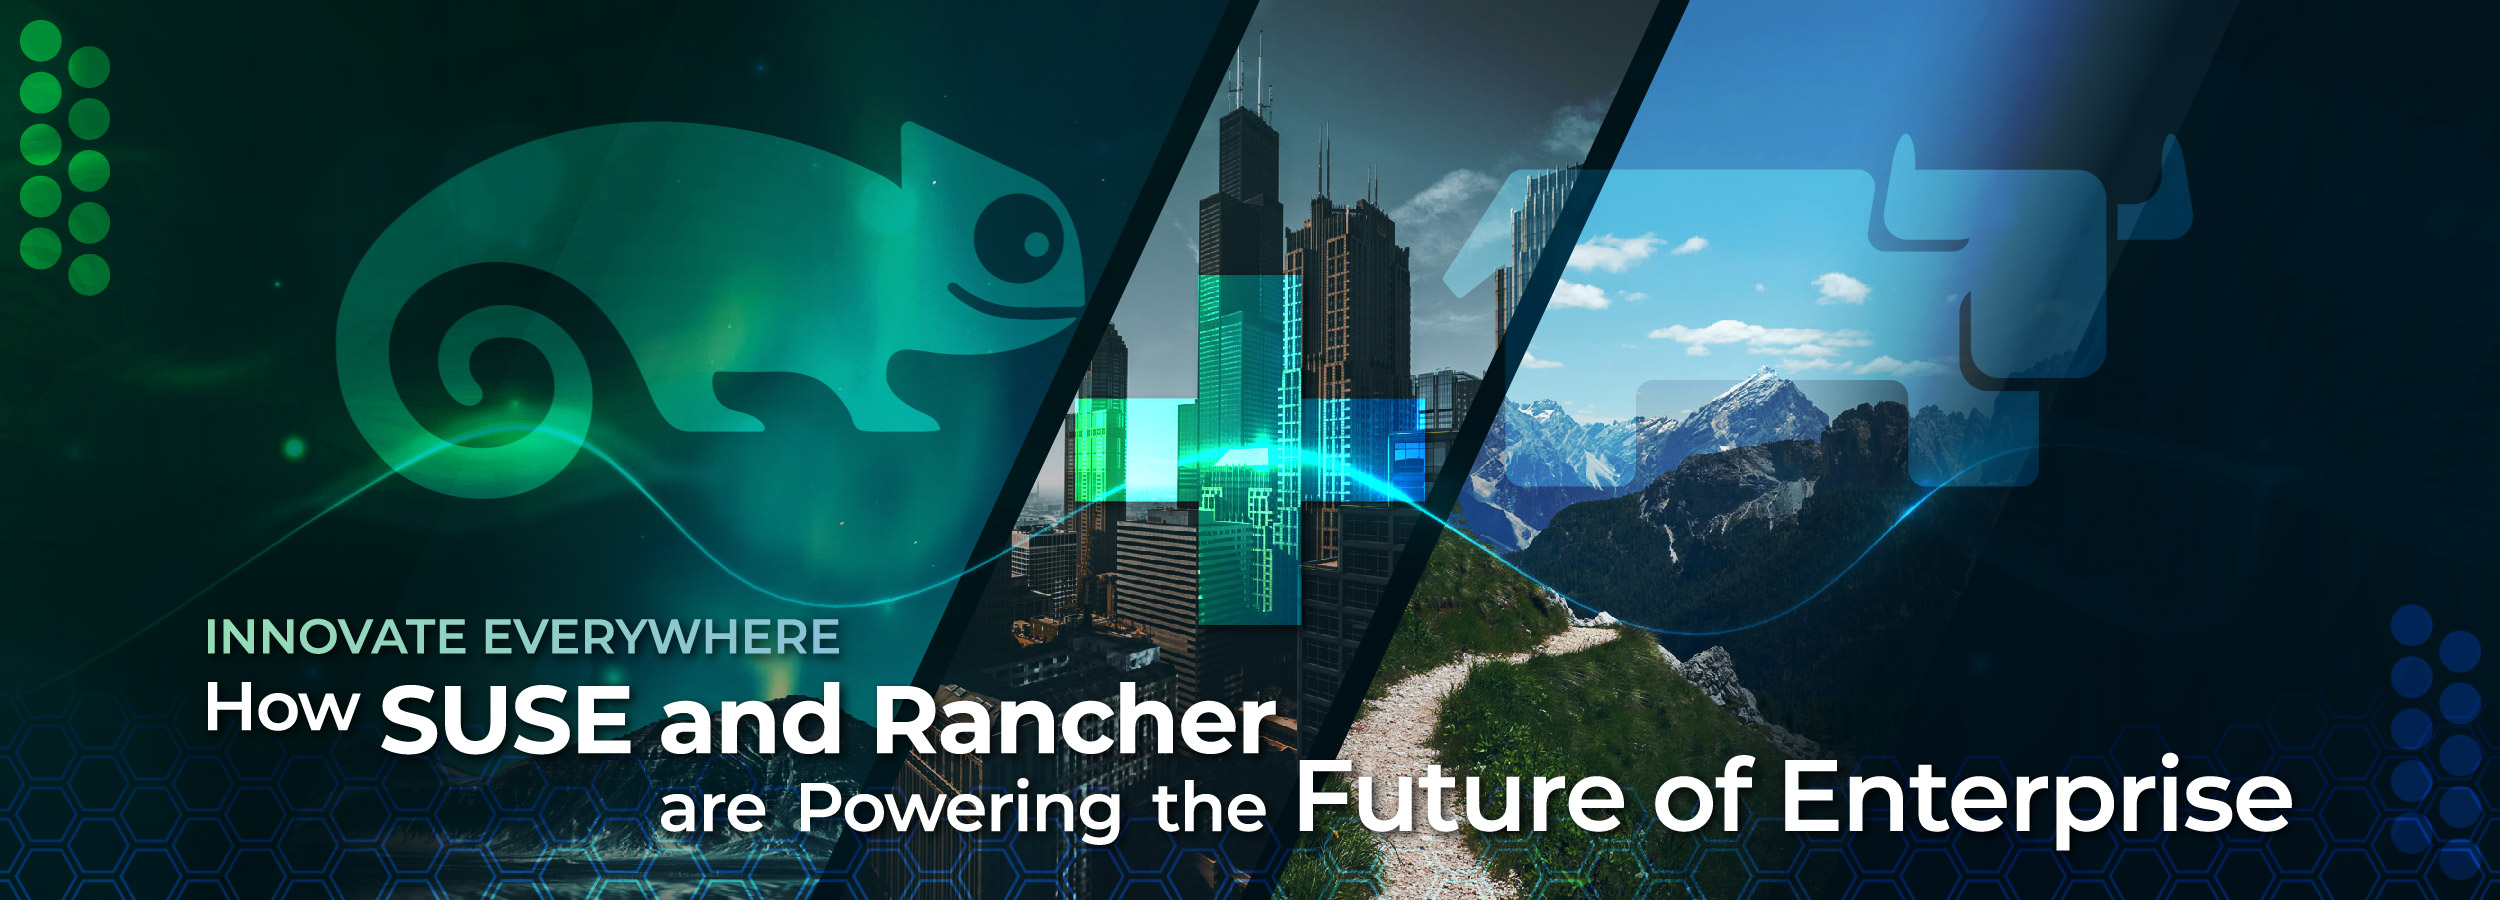 How SUSE and Rancher are Powering the Future of Enterprise